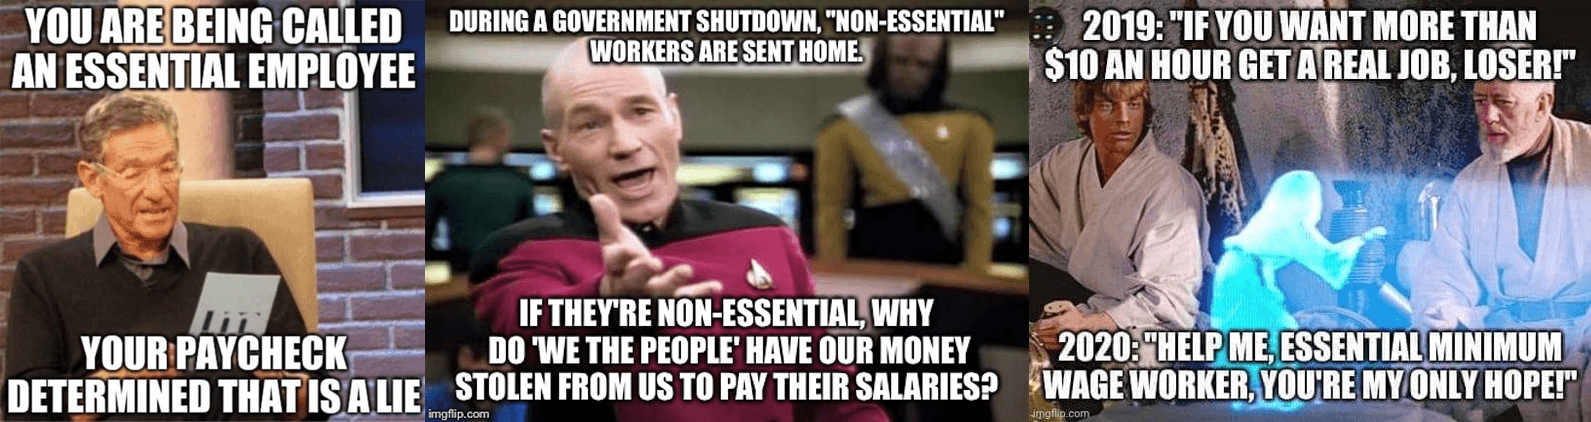 Memes about how essential employees are paid poorly.